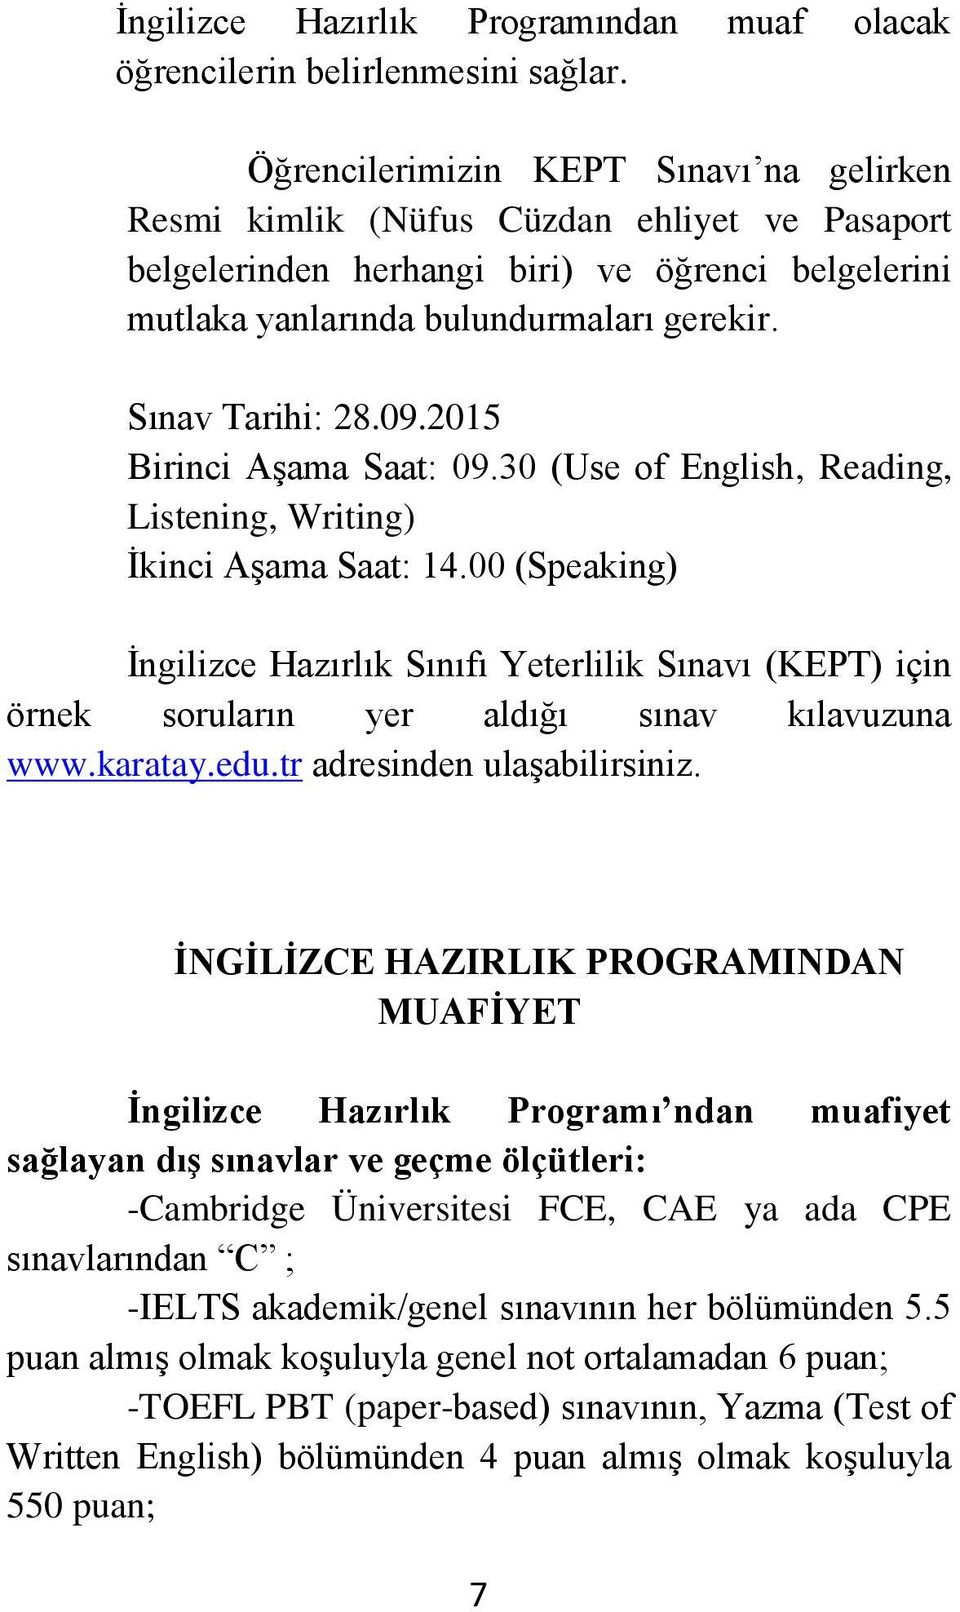 09.2015 Birinci Aşama Saat: 09.30 (Use of English, Reading, Listening, Writing) İkinci Aşama Saat: 14.